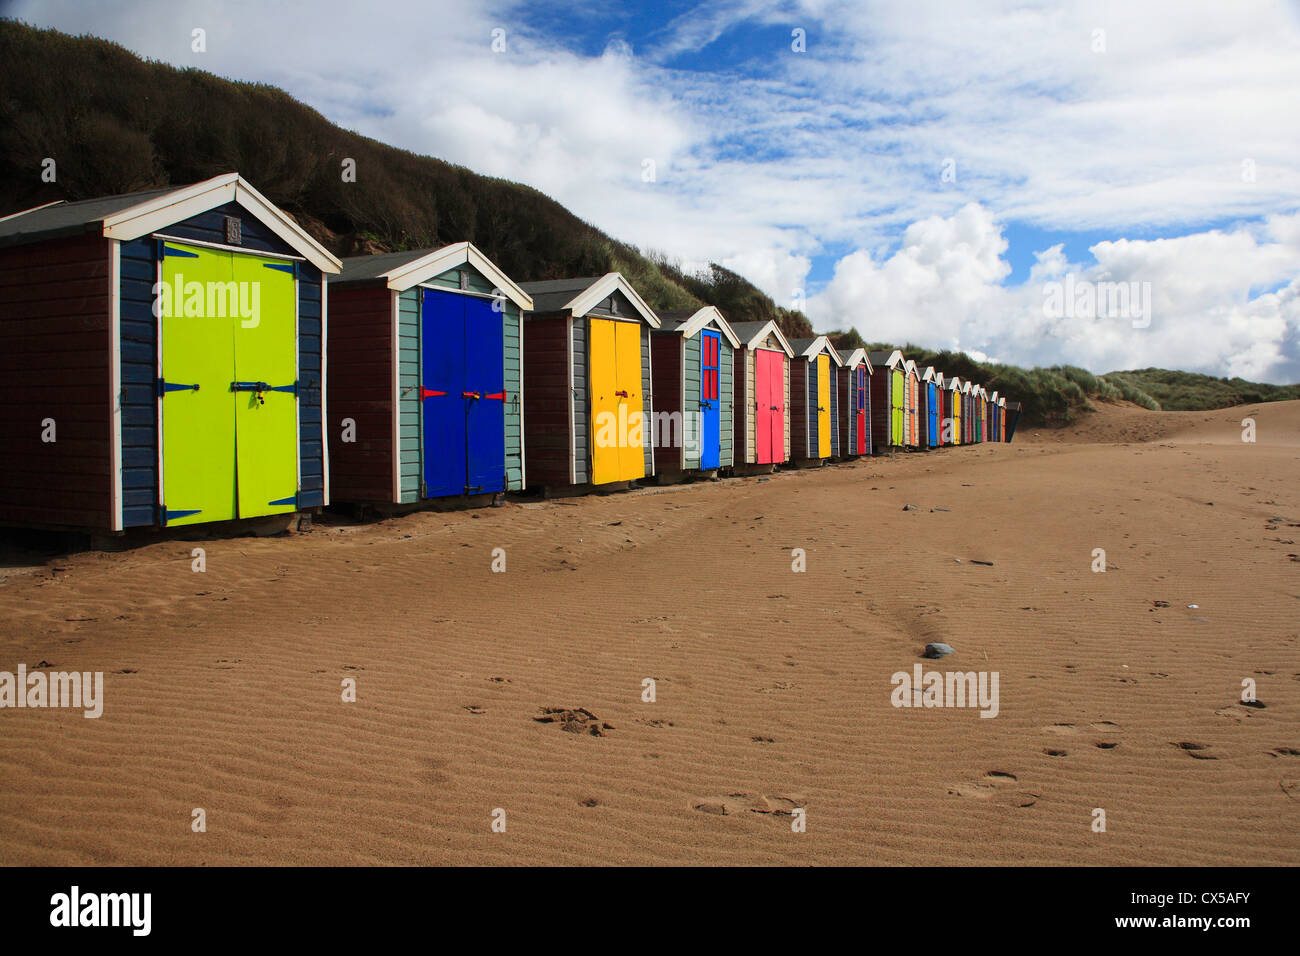 Row of brightly colored beach huts on sand beach blue sky with white clouds - Stock Image